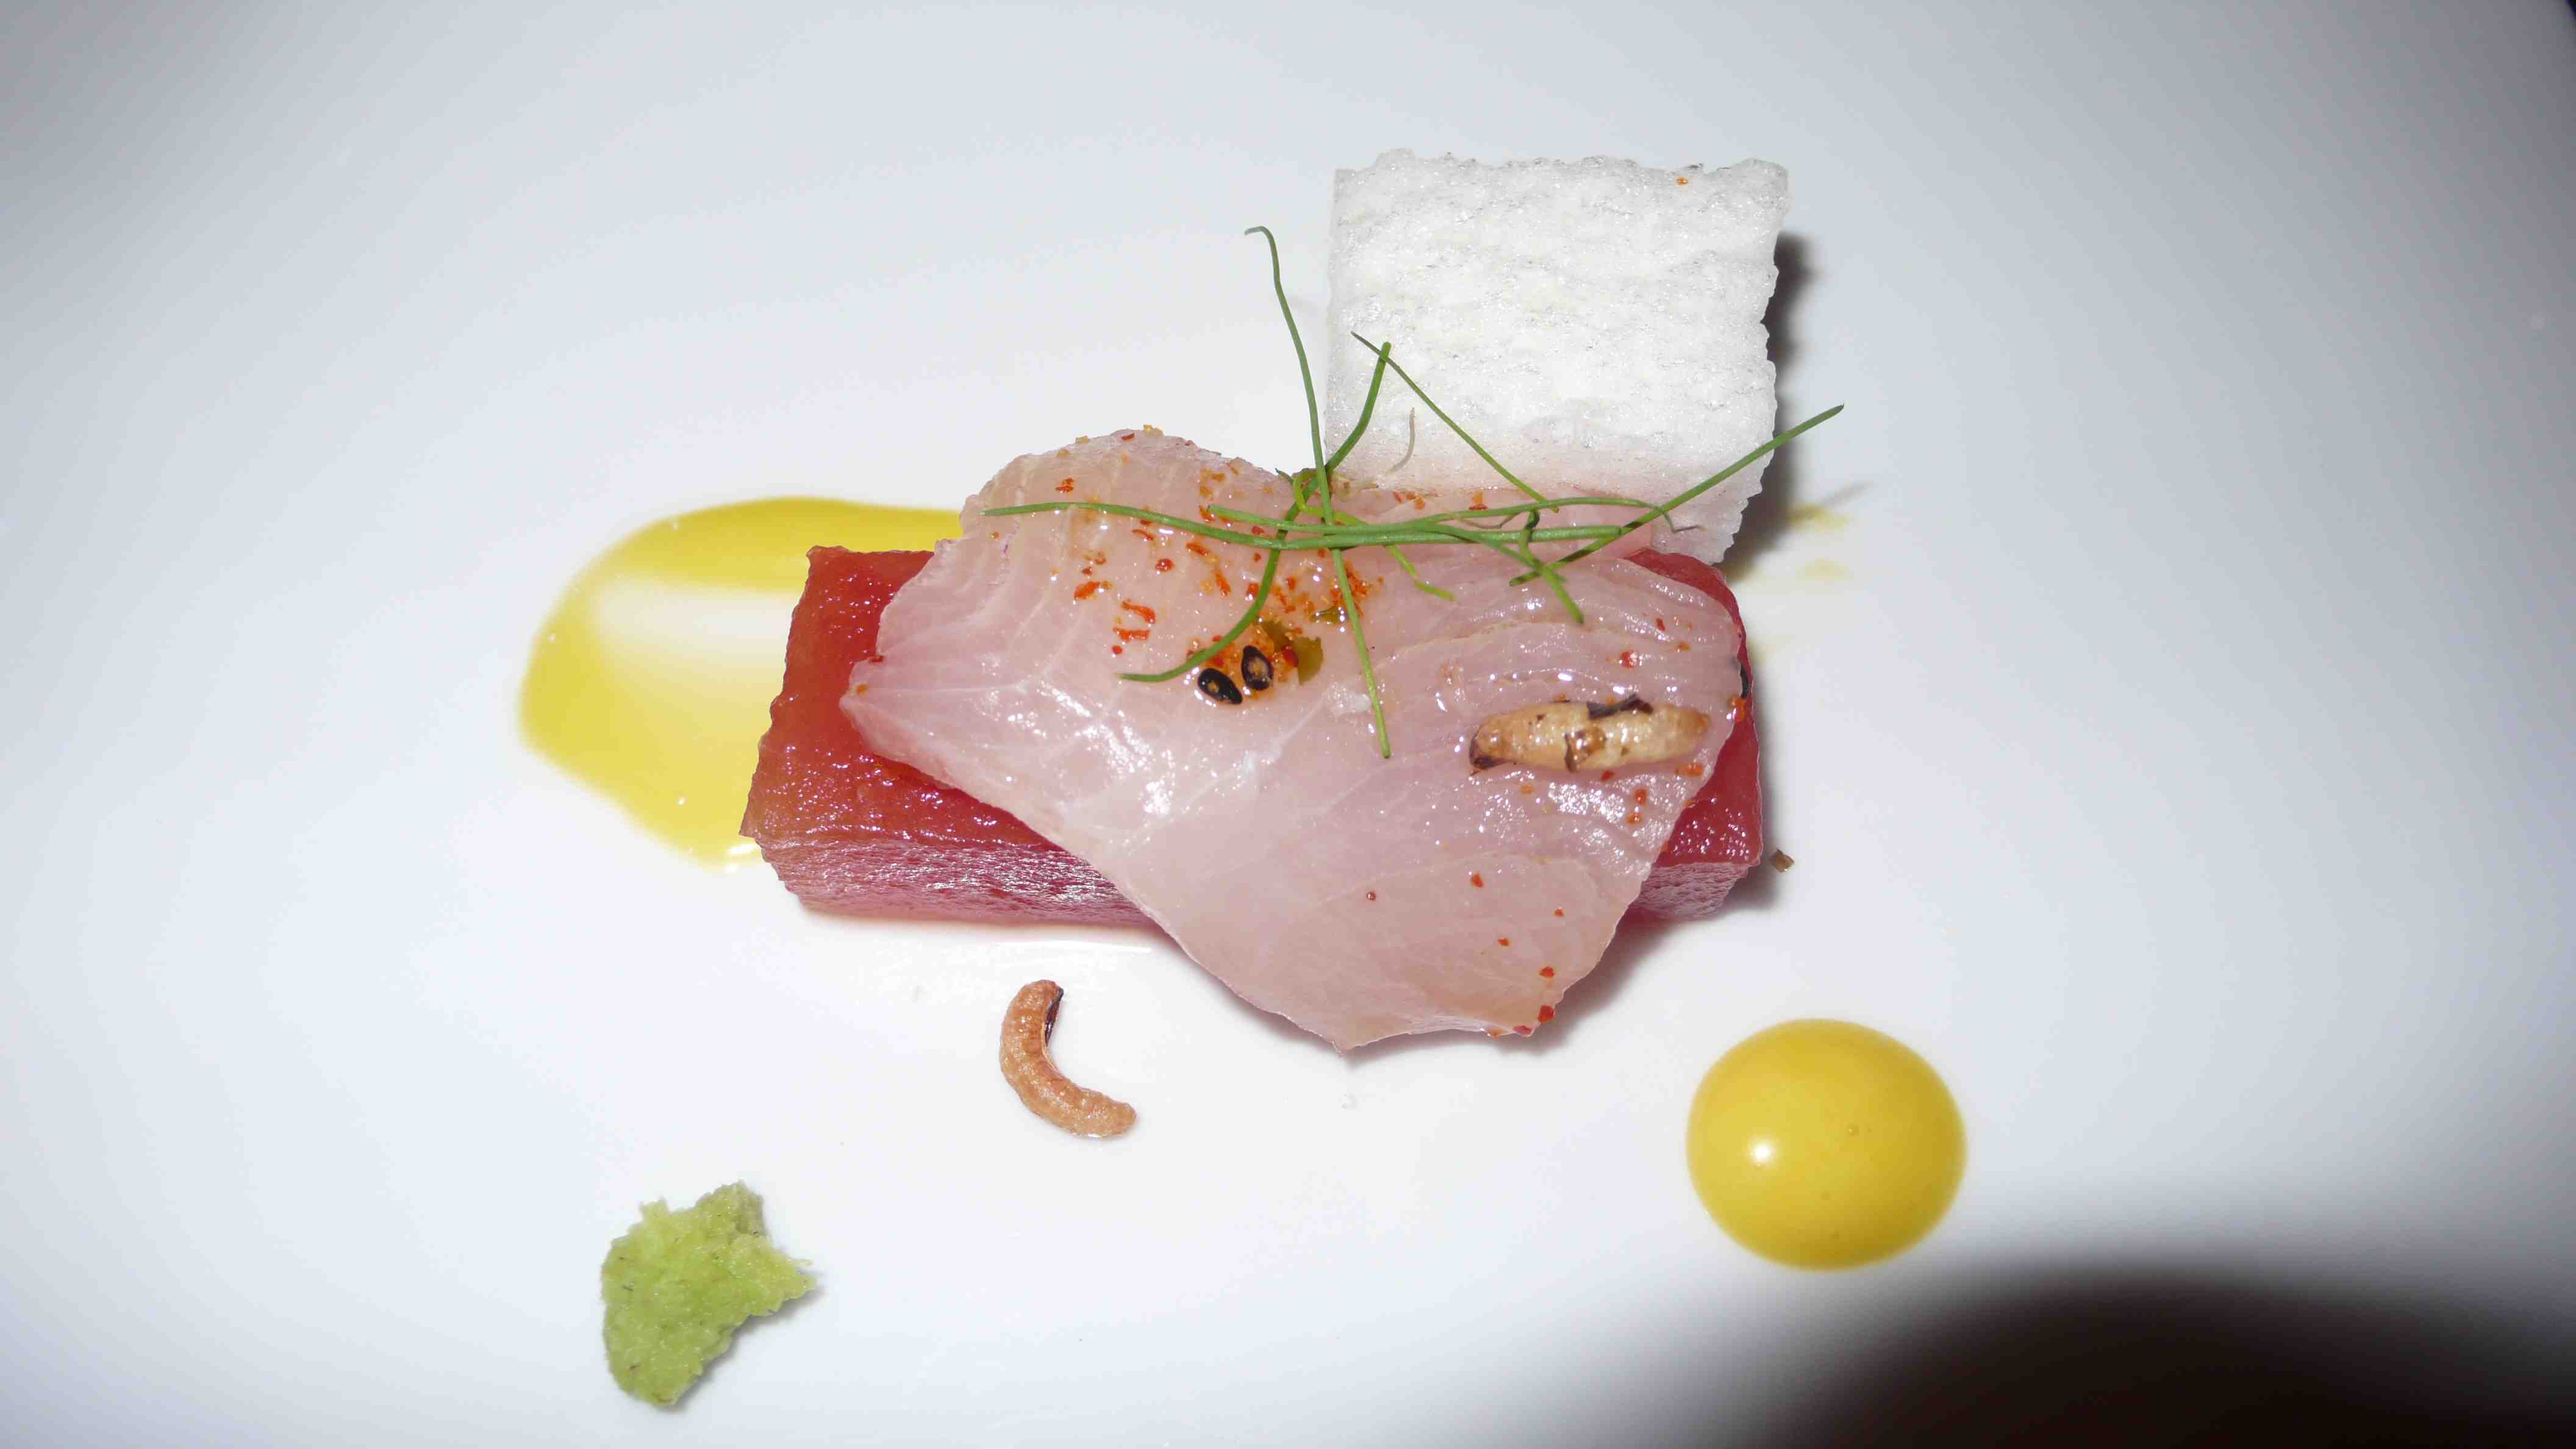 Yellowtal sashimi